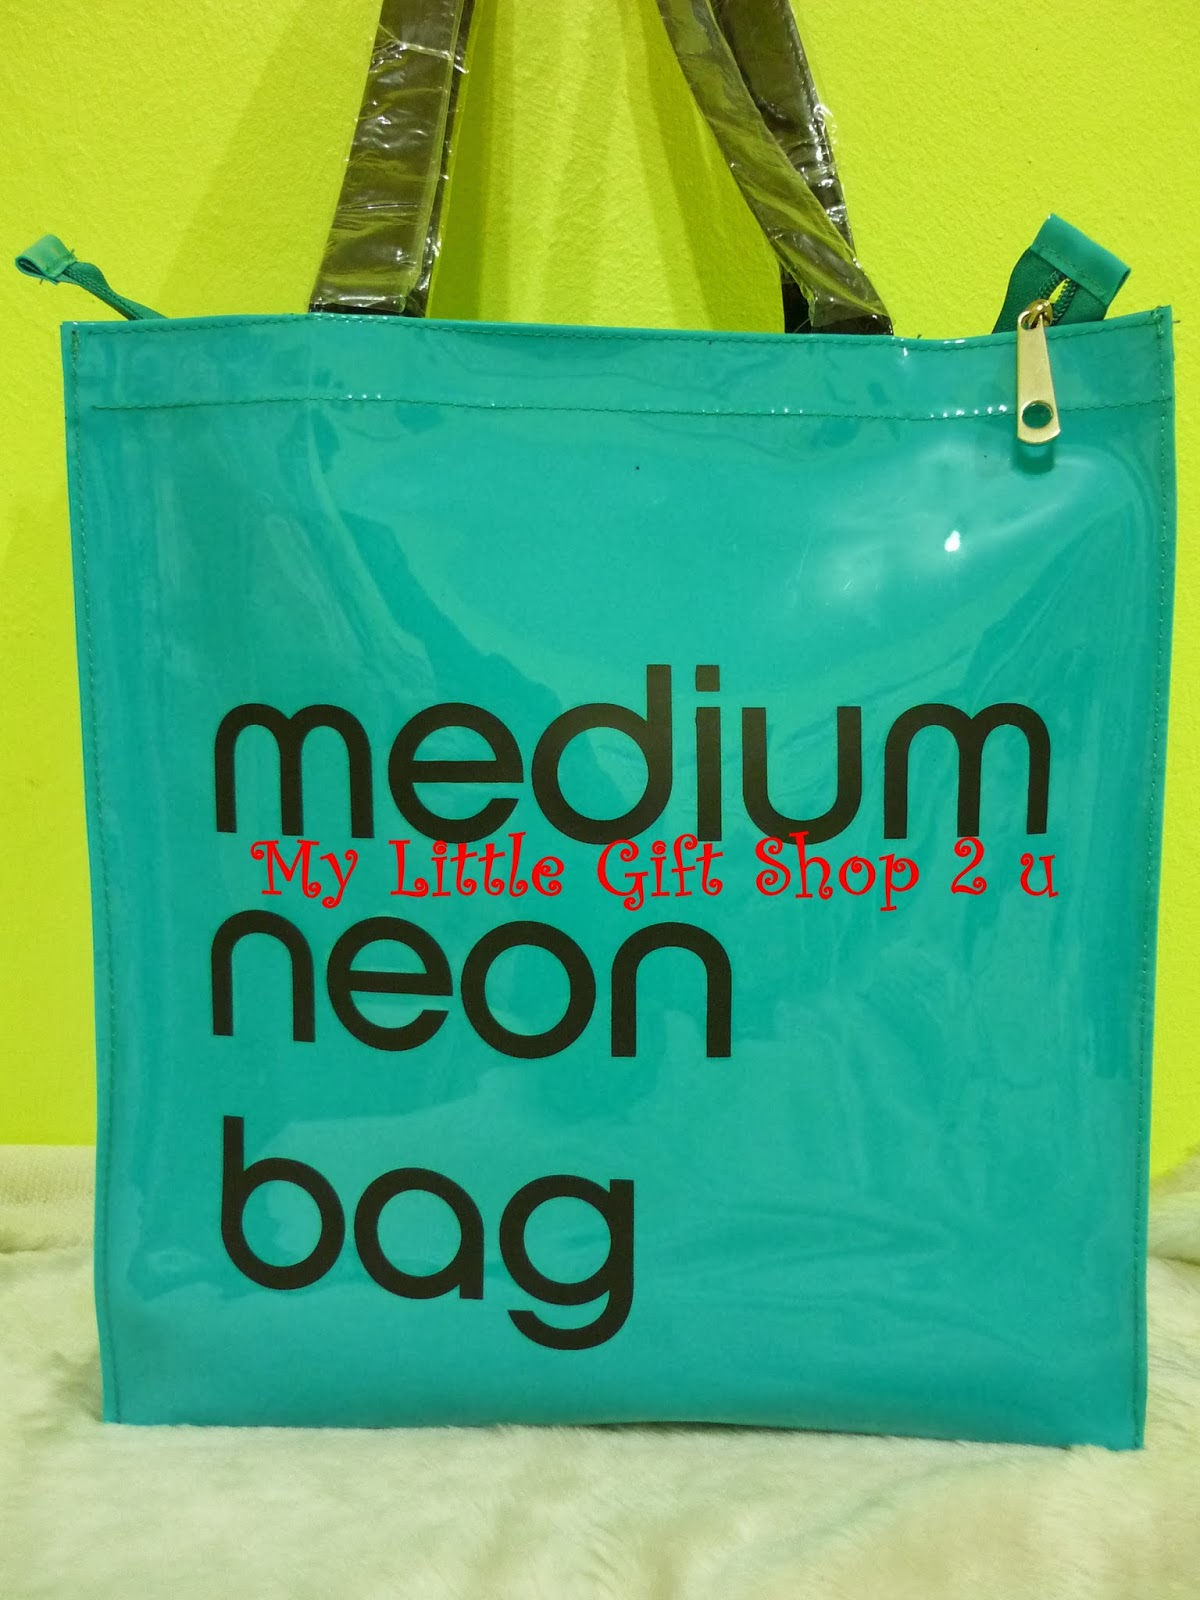 Medium Neon Bag Medium Neon Bag Turquoise